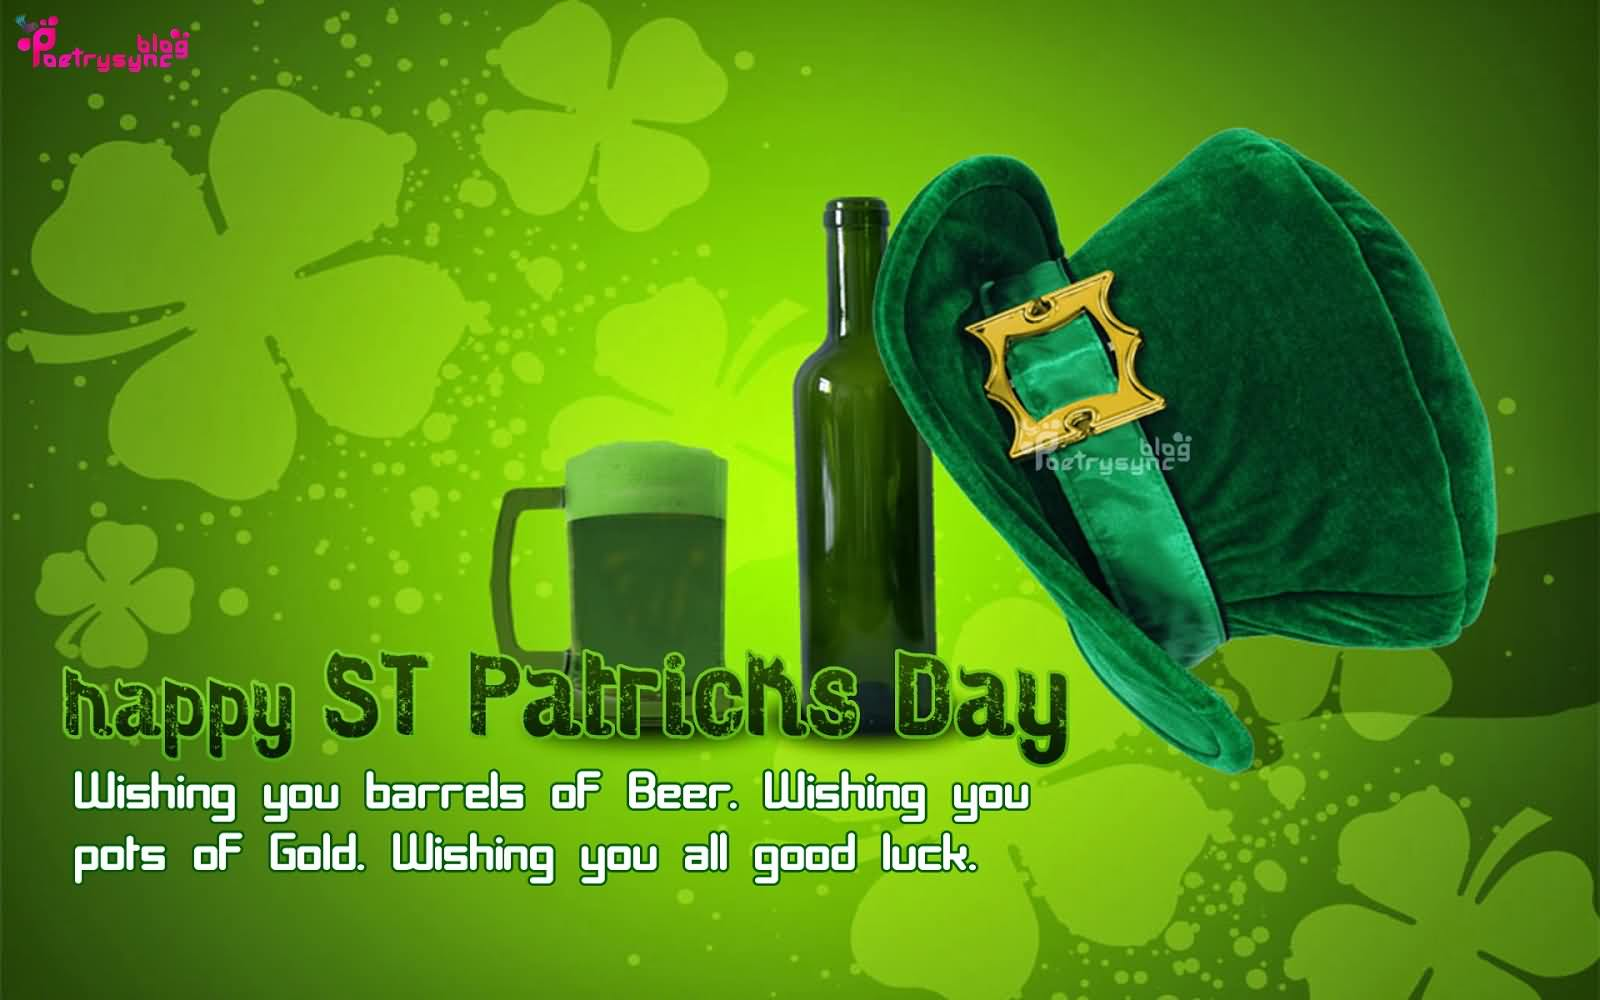 Good Luck Happy St. Patrick's Day Wishes